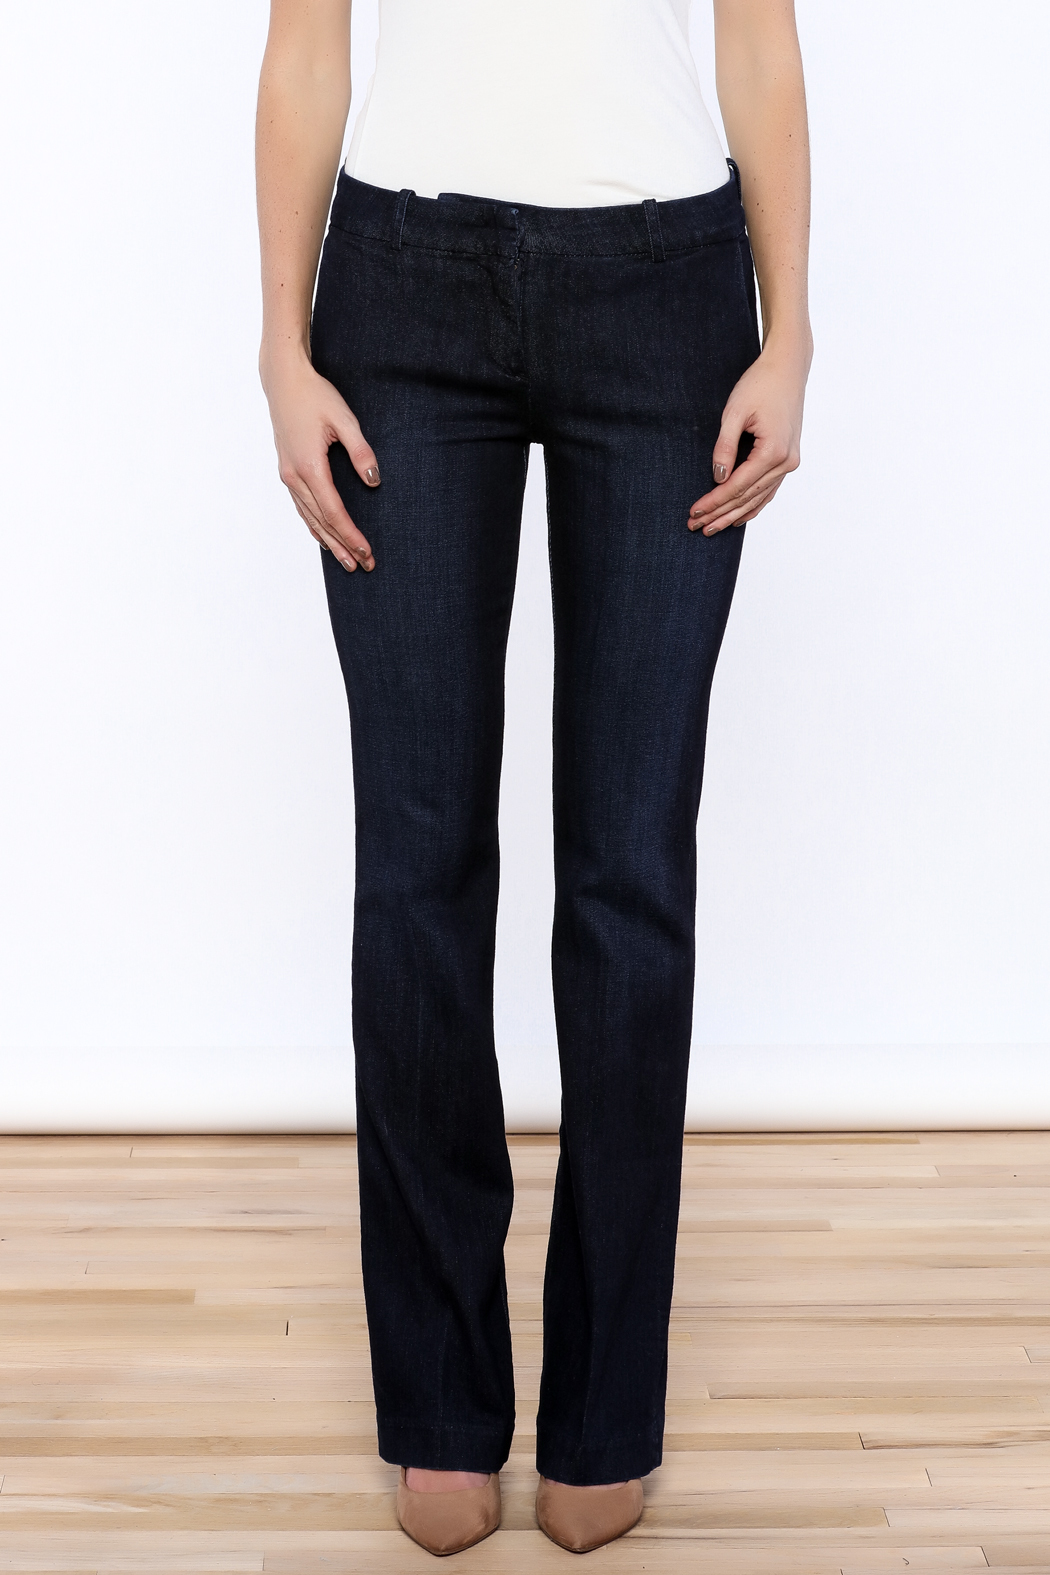 Kut from the Kloth Natalie Trouser Flare - Side Cropped Image